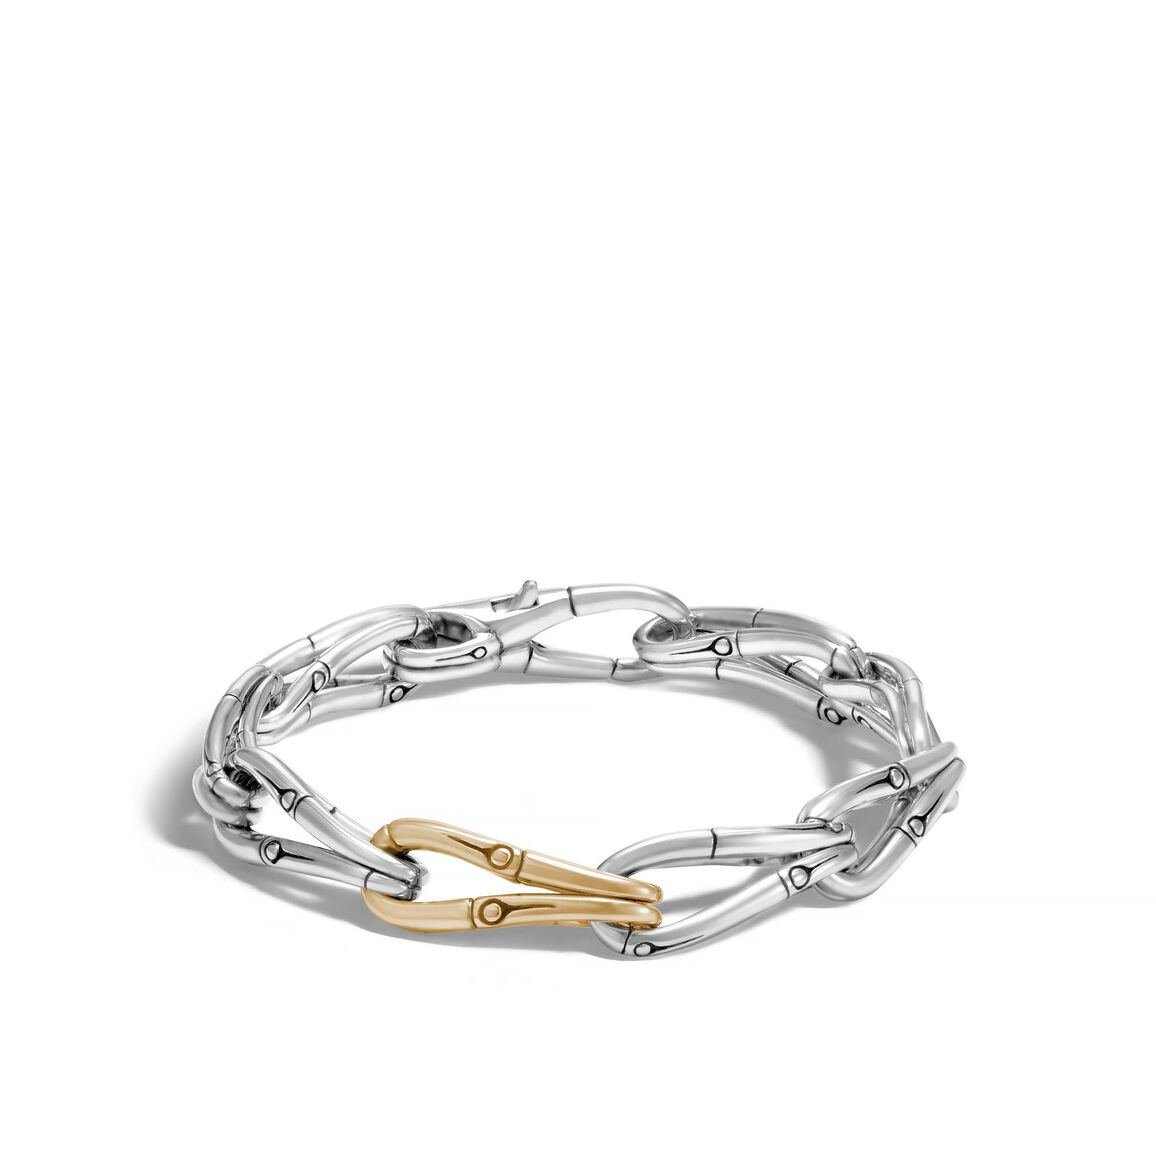 Bamboo 9.5MM Link Bracelet in Silver and 18K Gold